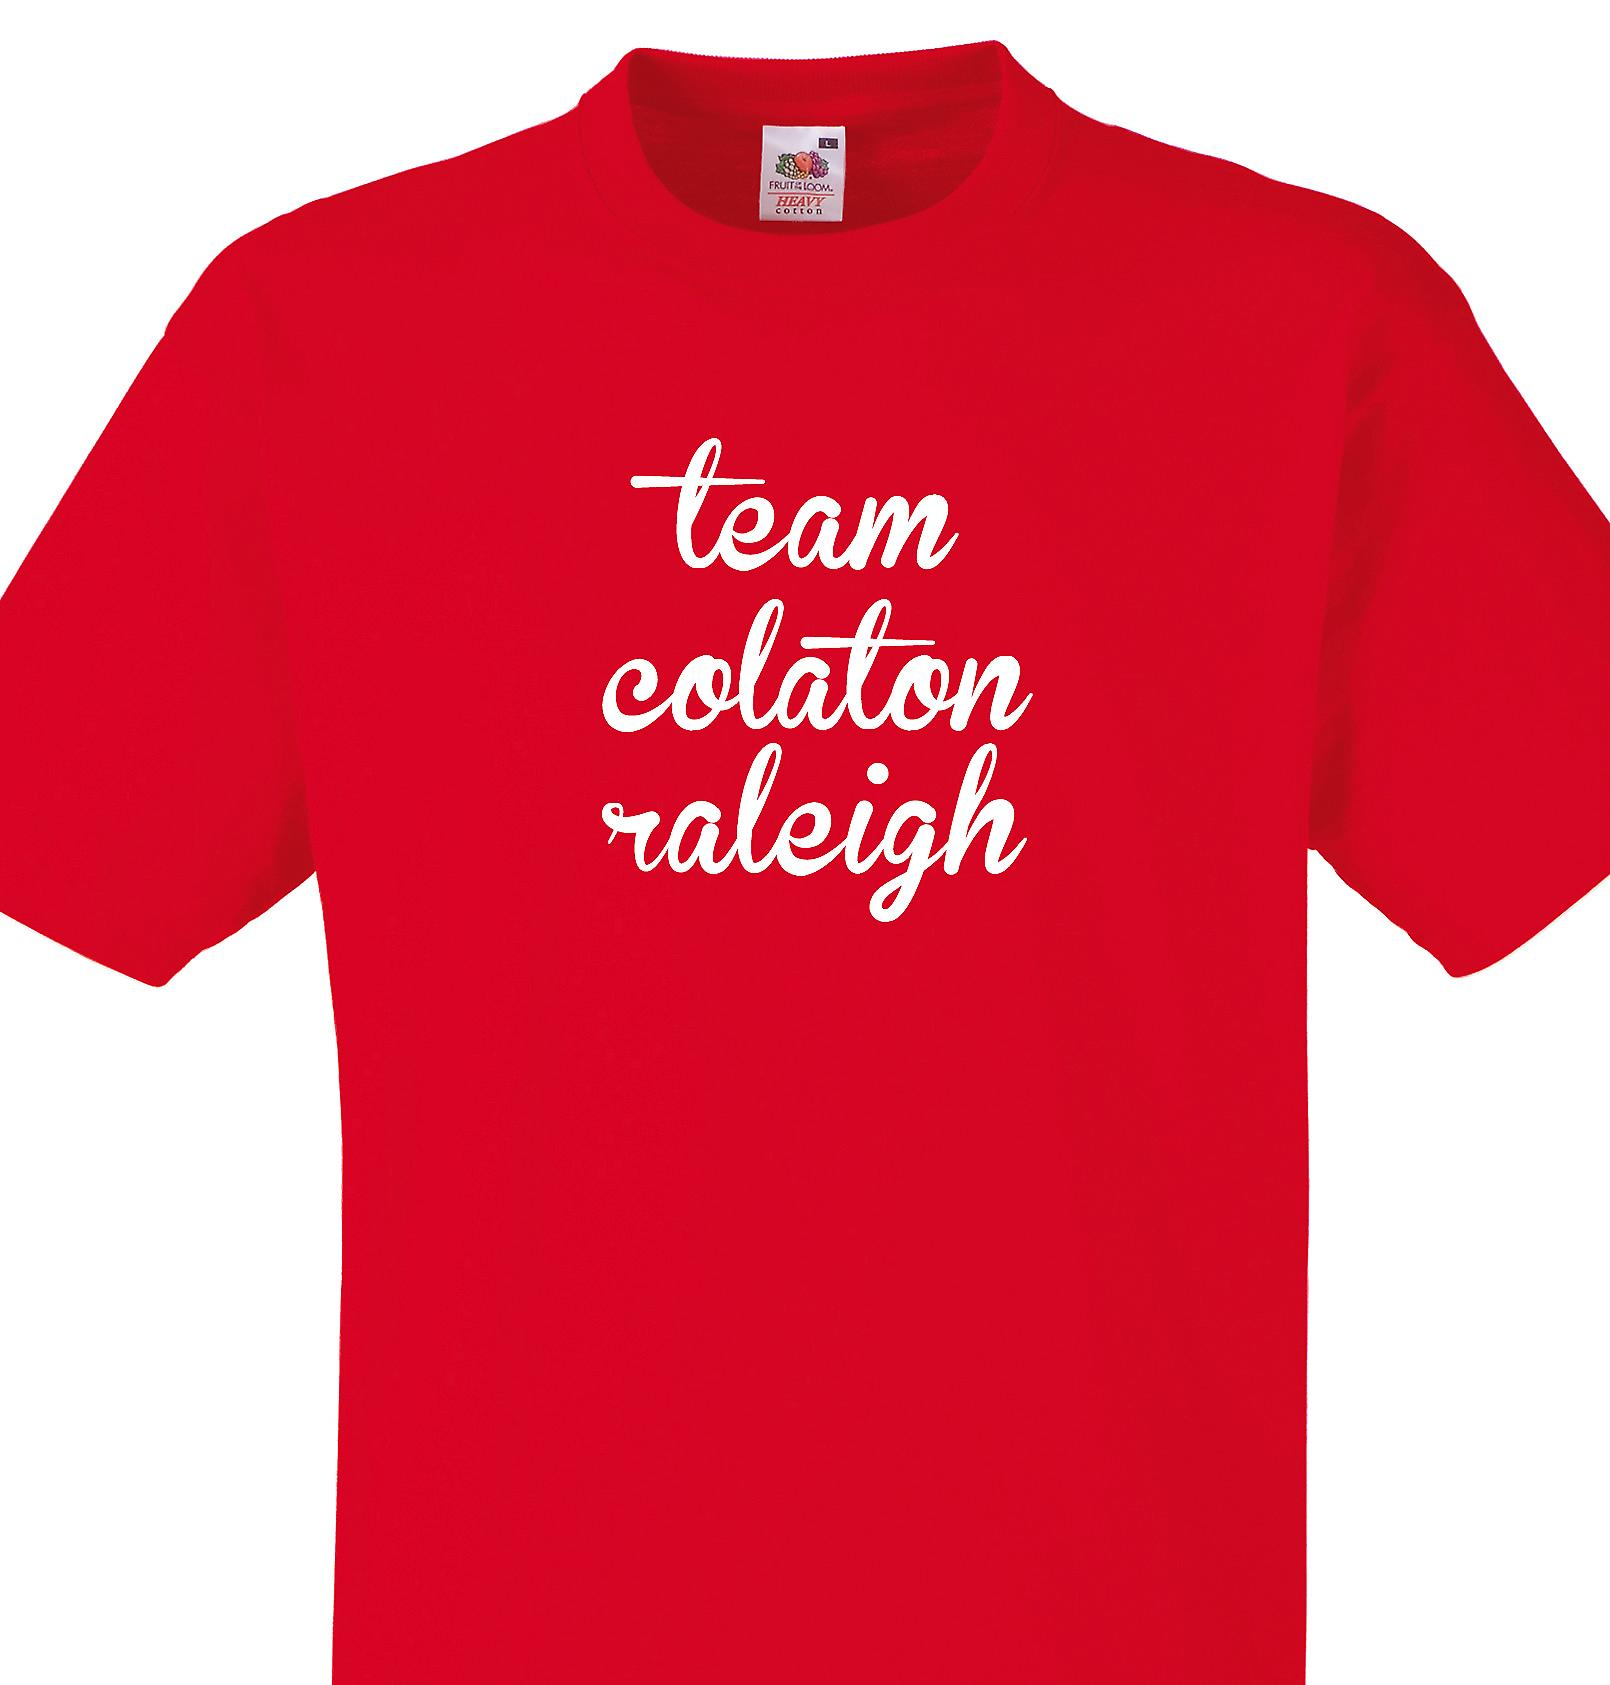 Team Colaton raleigh Red T shirt